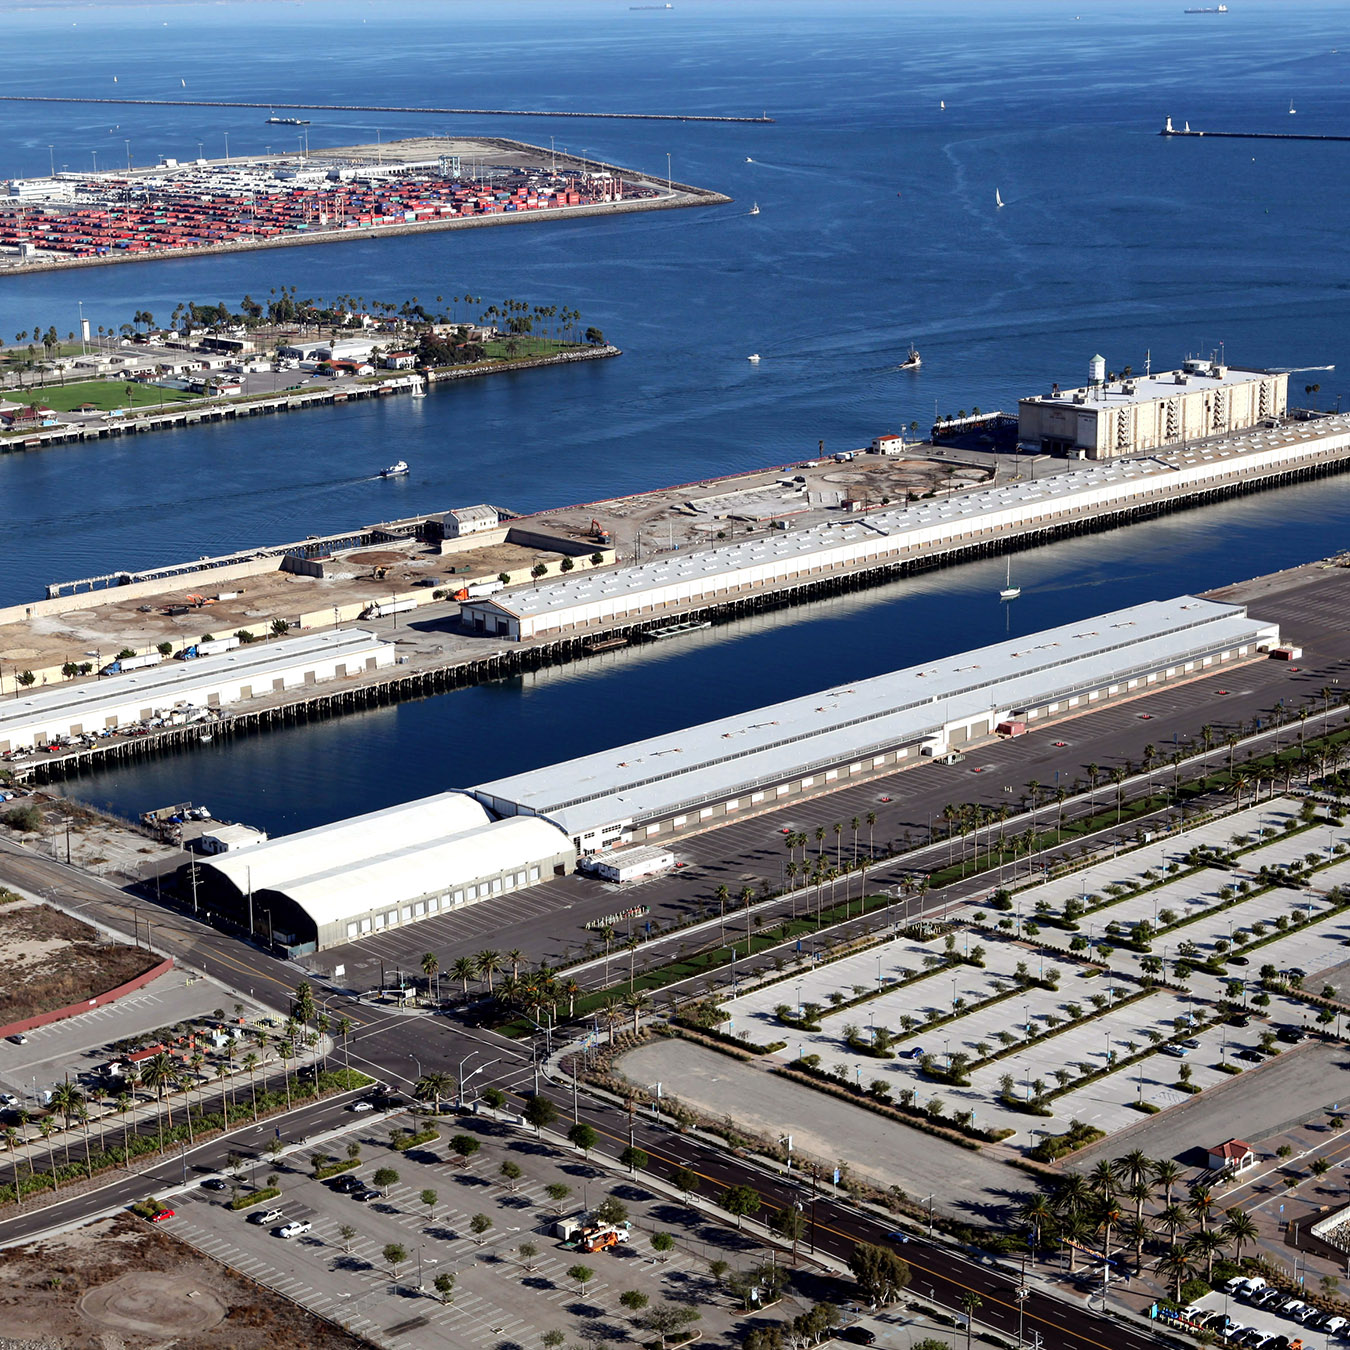 Aerial view of the section of the Port of Los Angeles slated to become AltaSea